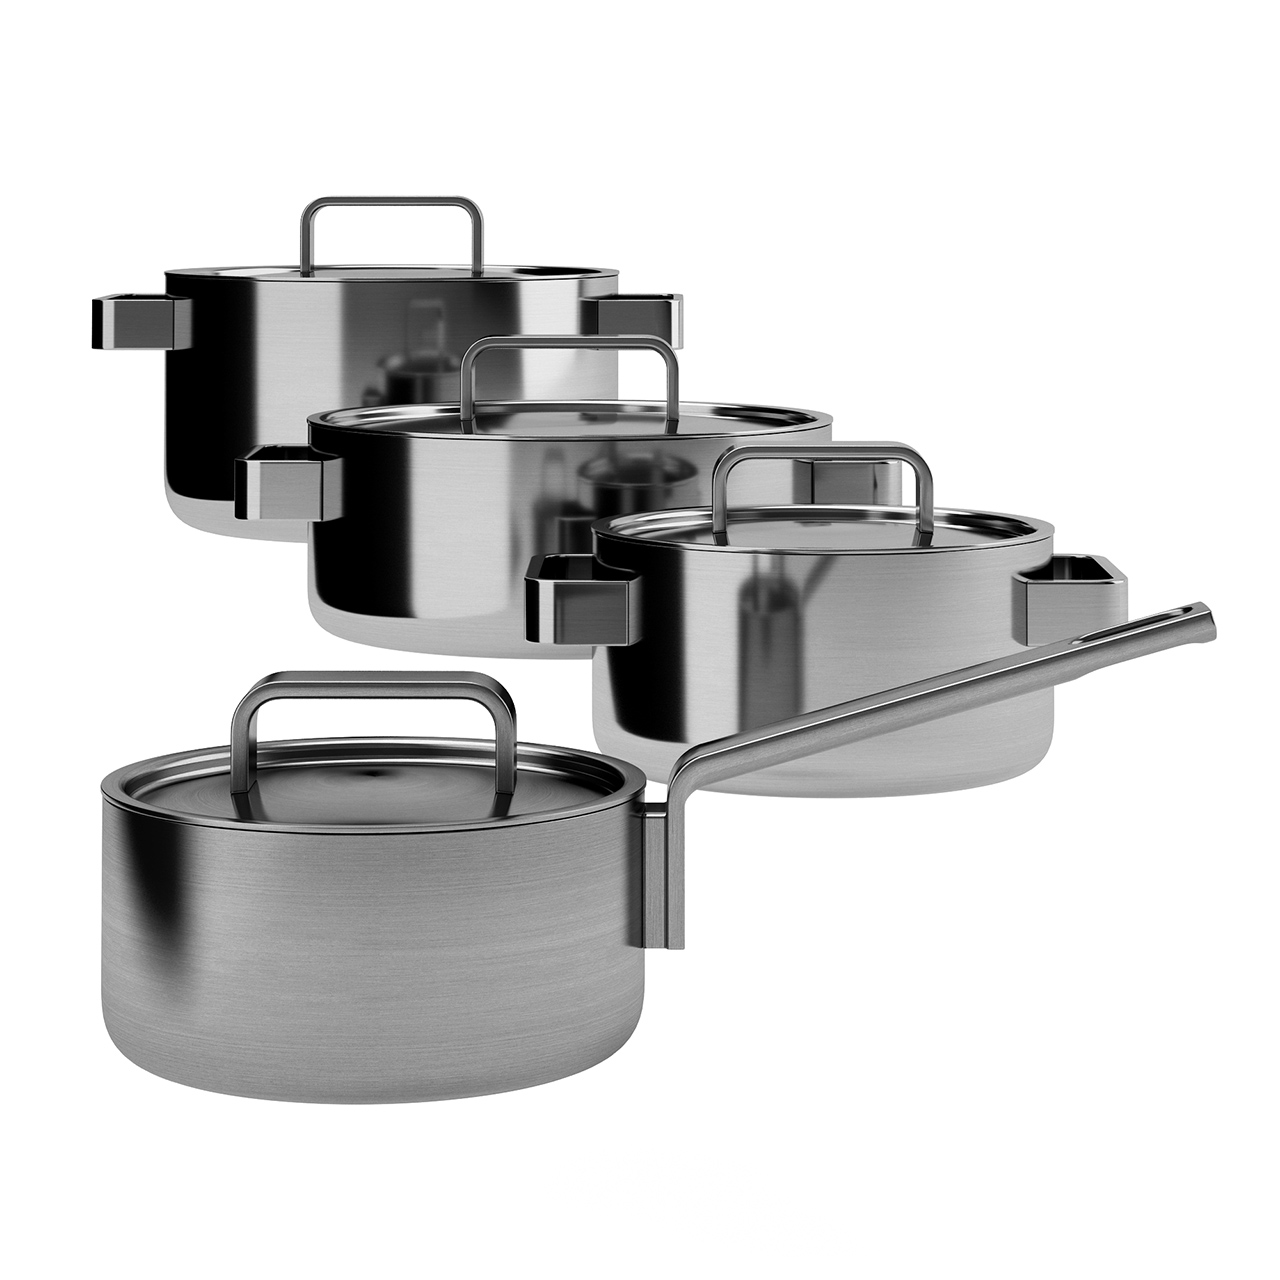 Tools 4 Set Cooking Pots by Iittala